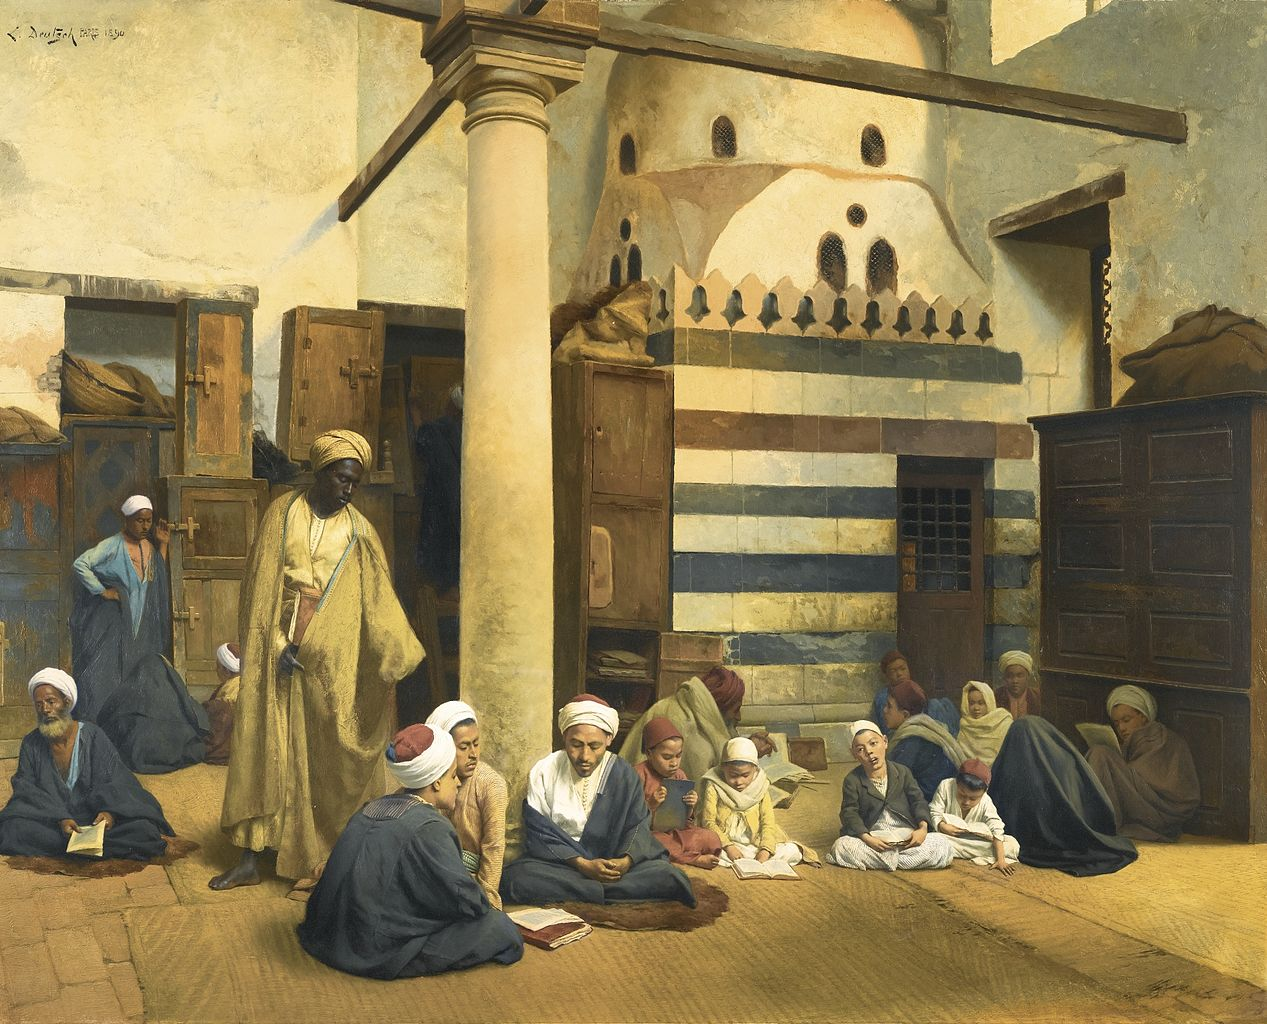 File:Ludwig Deutsch - In the madrasa.jpeg - Wikimedia Commons